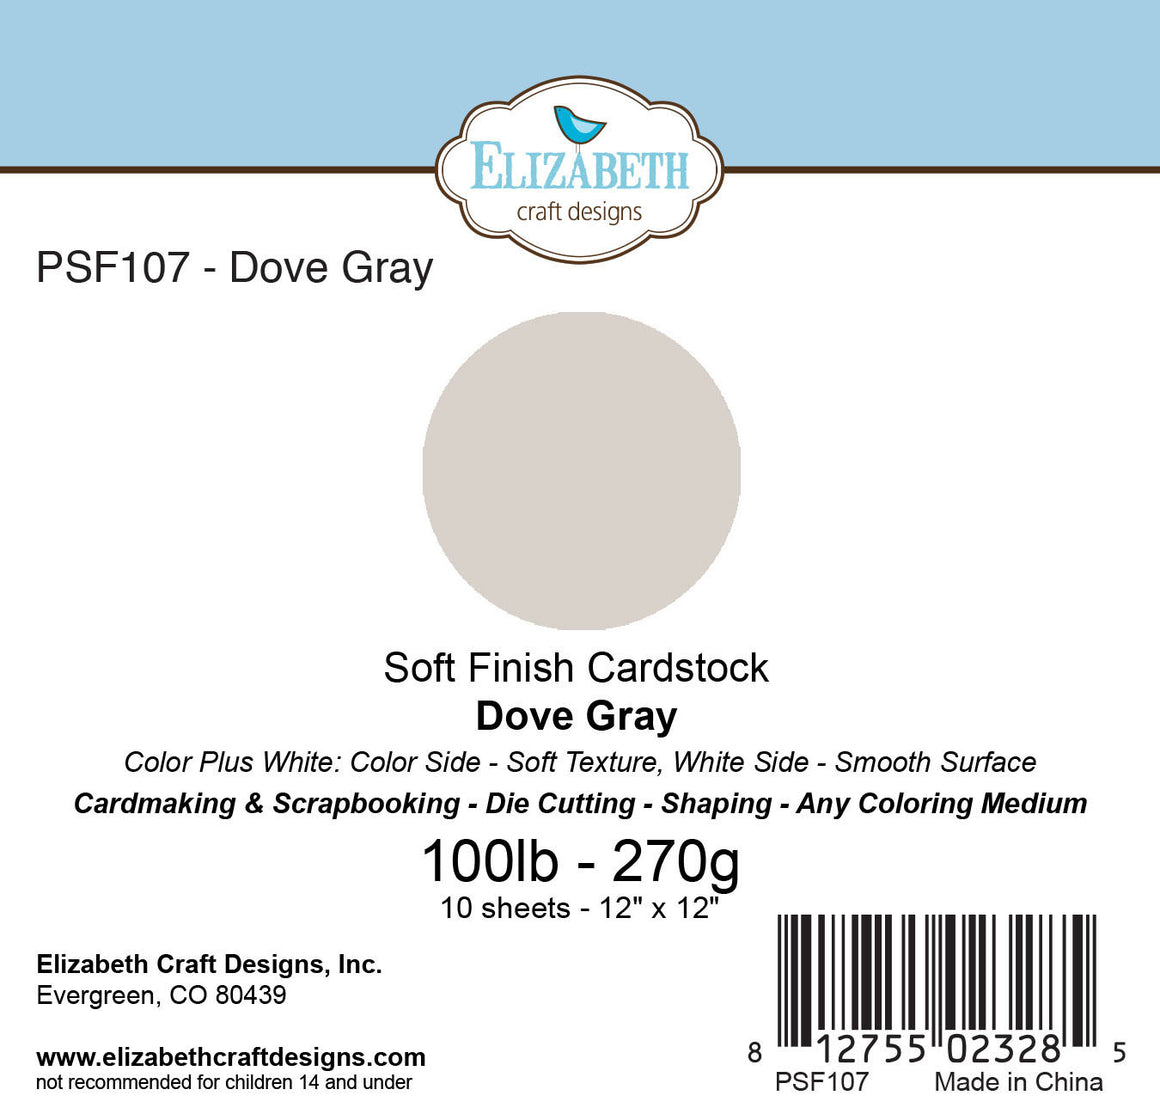 Soft Finish Cardstock, Dove Gray - Cardstock - ElizabethCraftDesigns.com